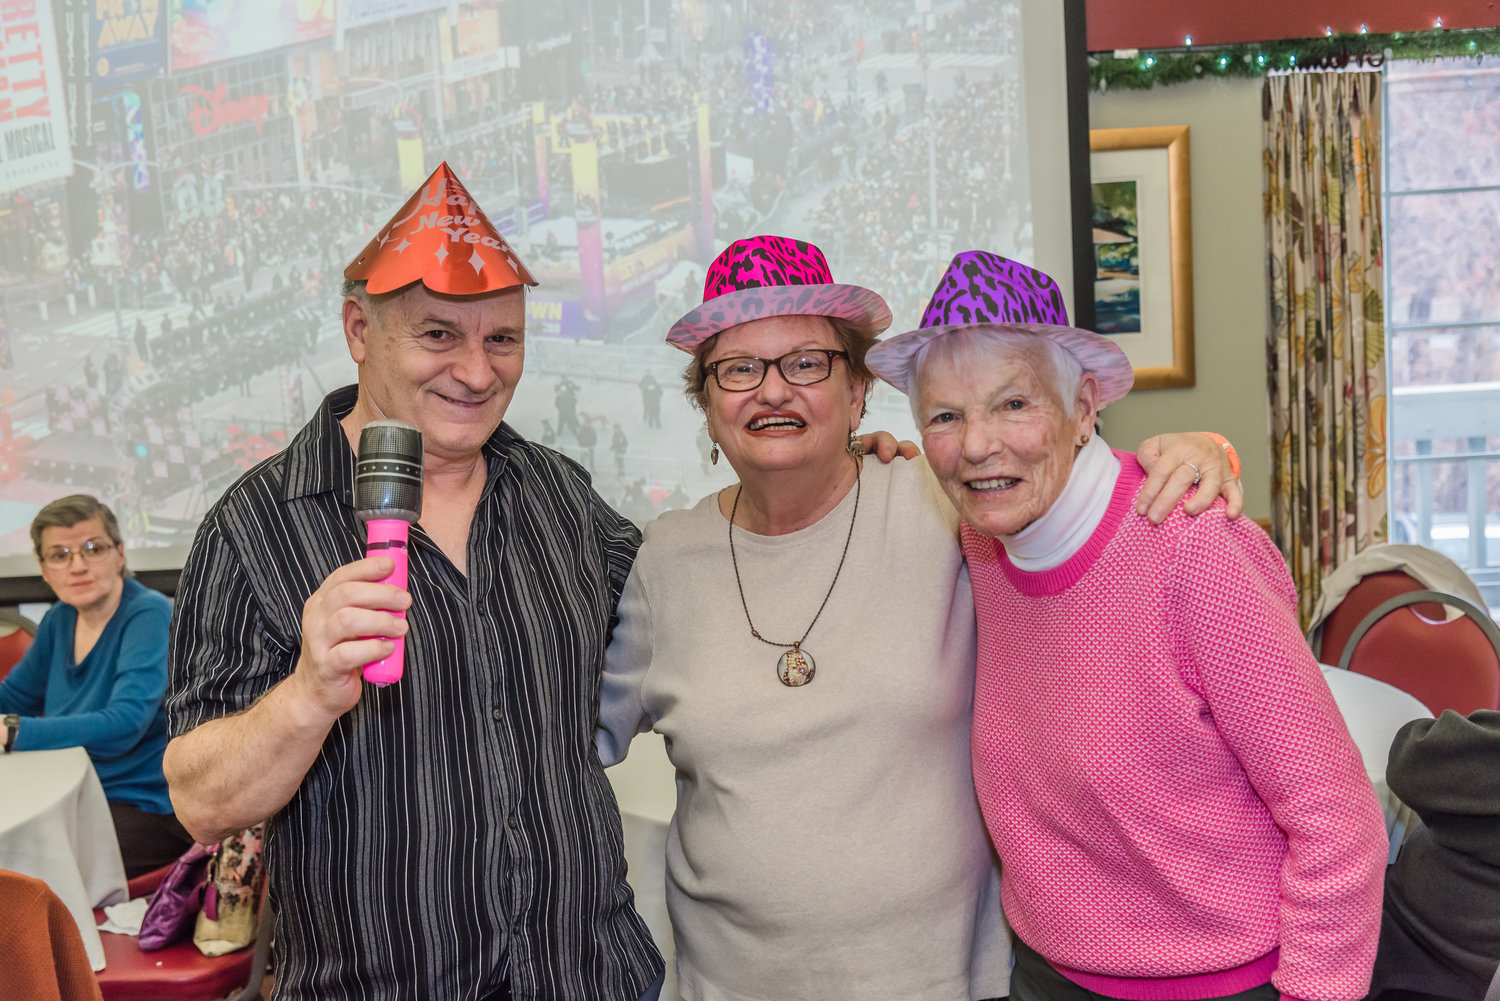 James Simeone, left, Annette Medugno and Pat Parmelee were feeling festive in their decorative New Year's hats.